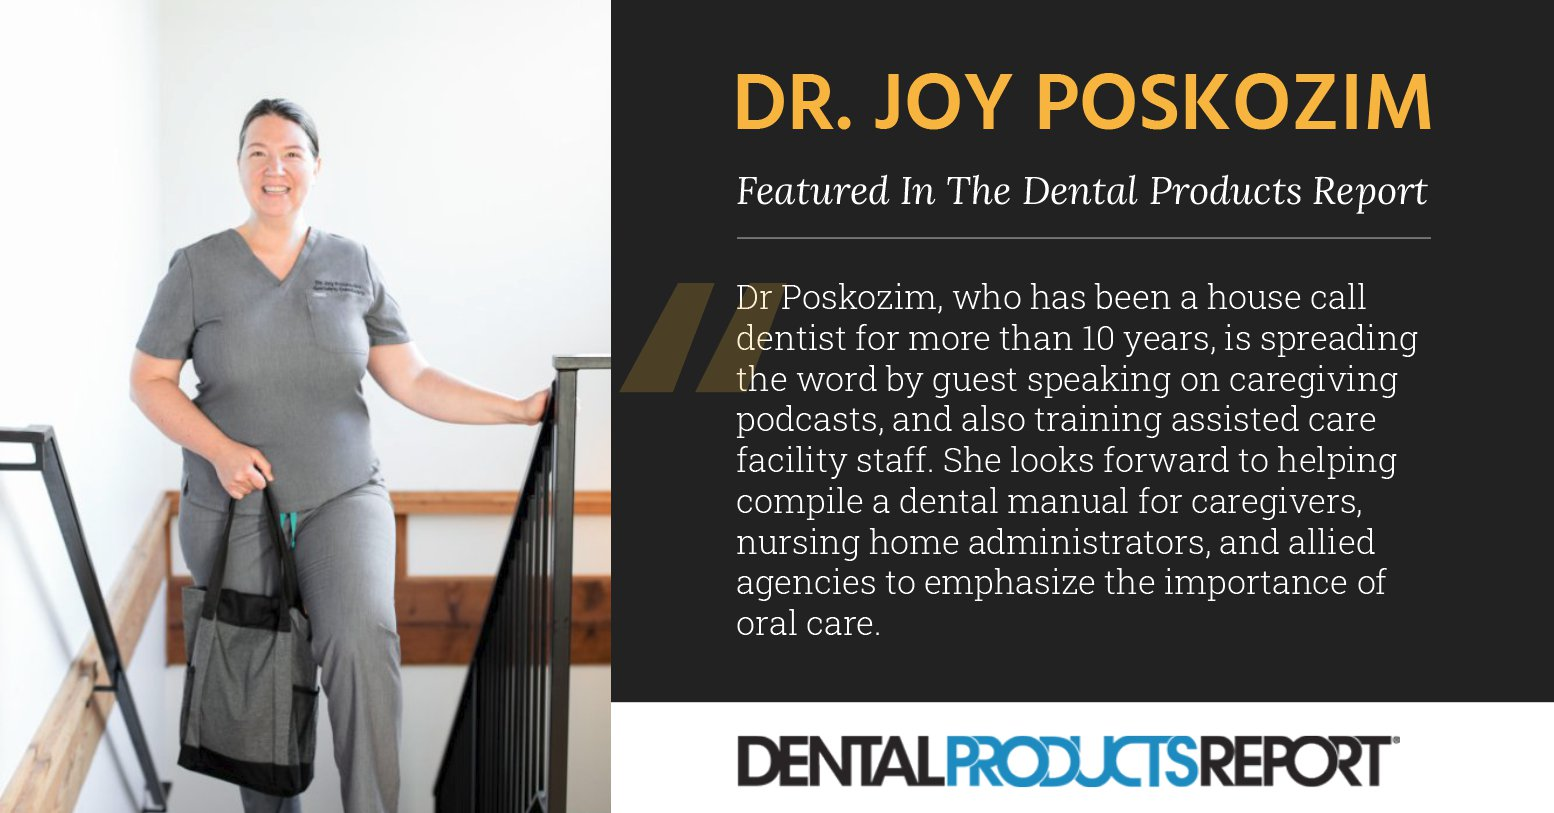 Dr. Joy Poskozim featured in the Dental Products Report